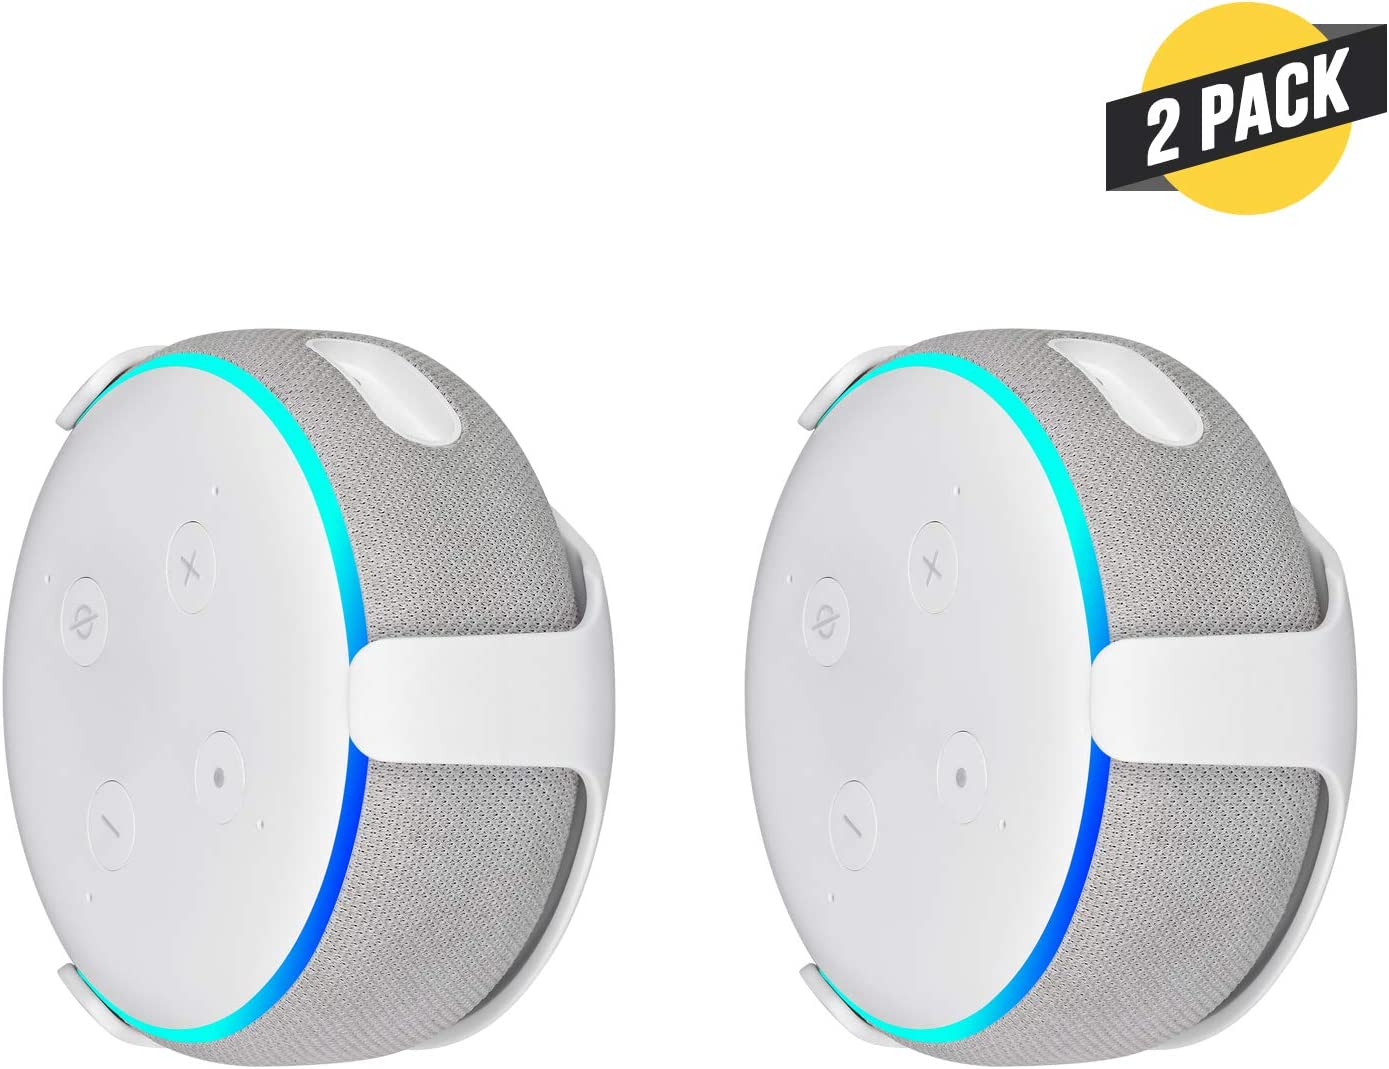 Mounting Alternative For Your Alexa Smart Speaker 3rd Gen White 1 Pack Wall Mount Compatible With Echo Dot Speaker Mounts